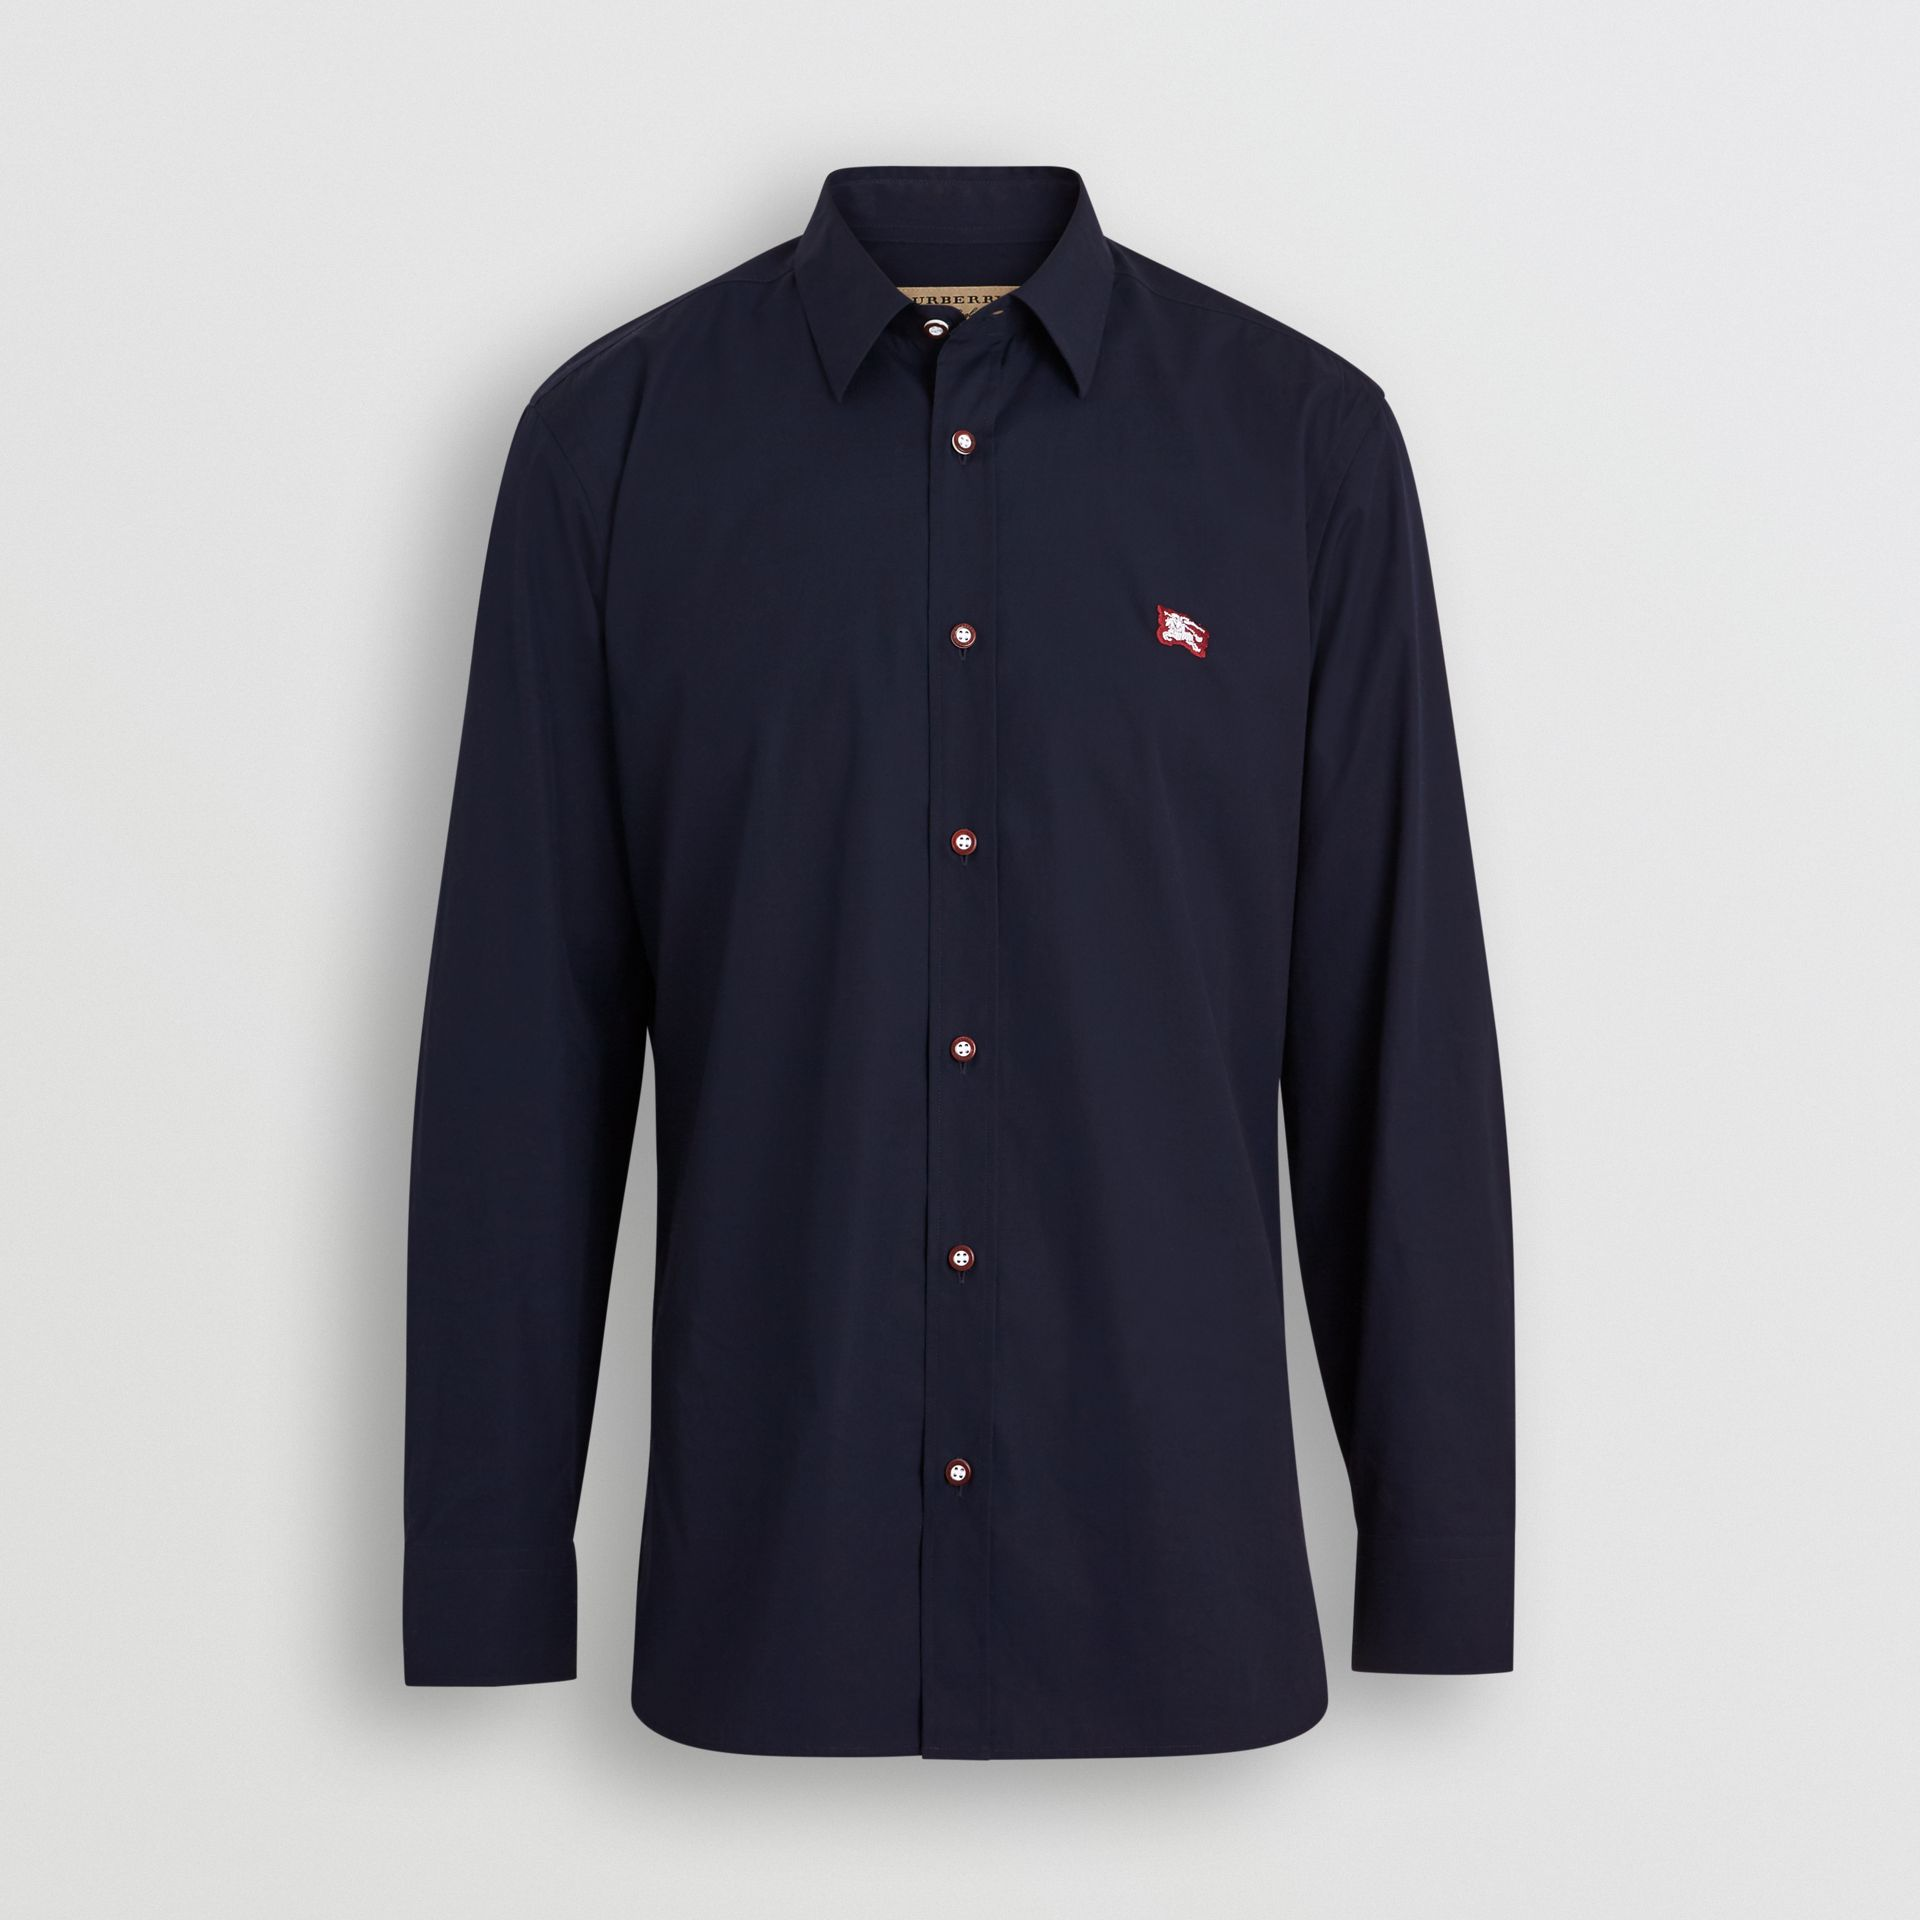 Burberry Navy Contrast Button Stretch Cotton Shirt